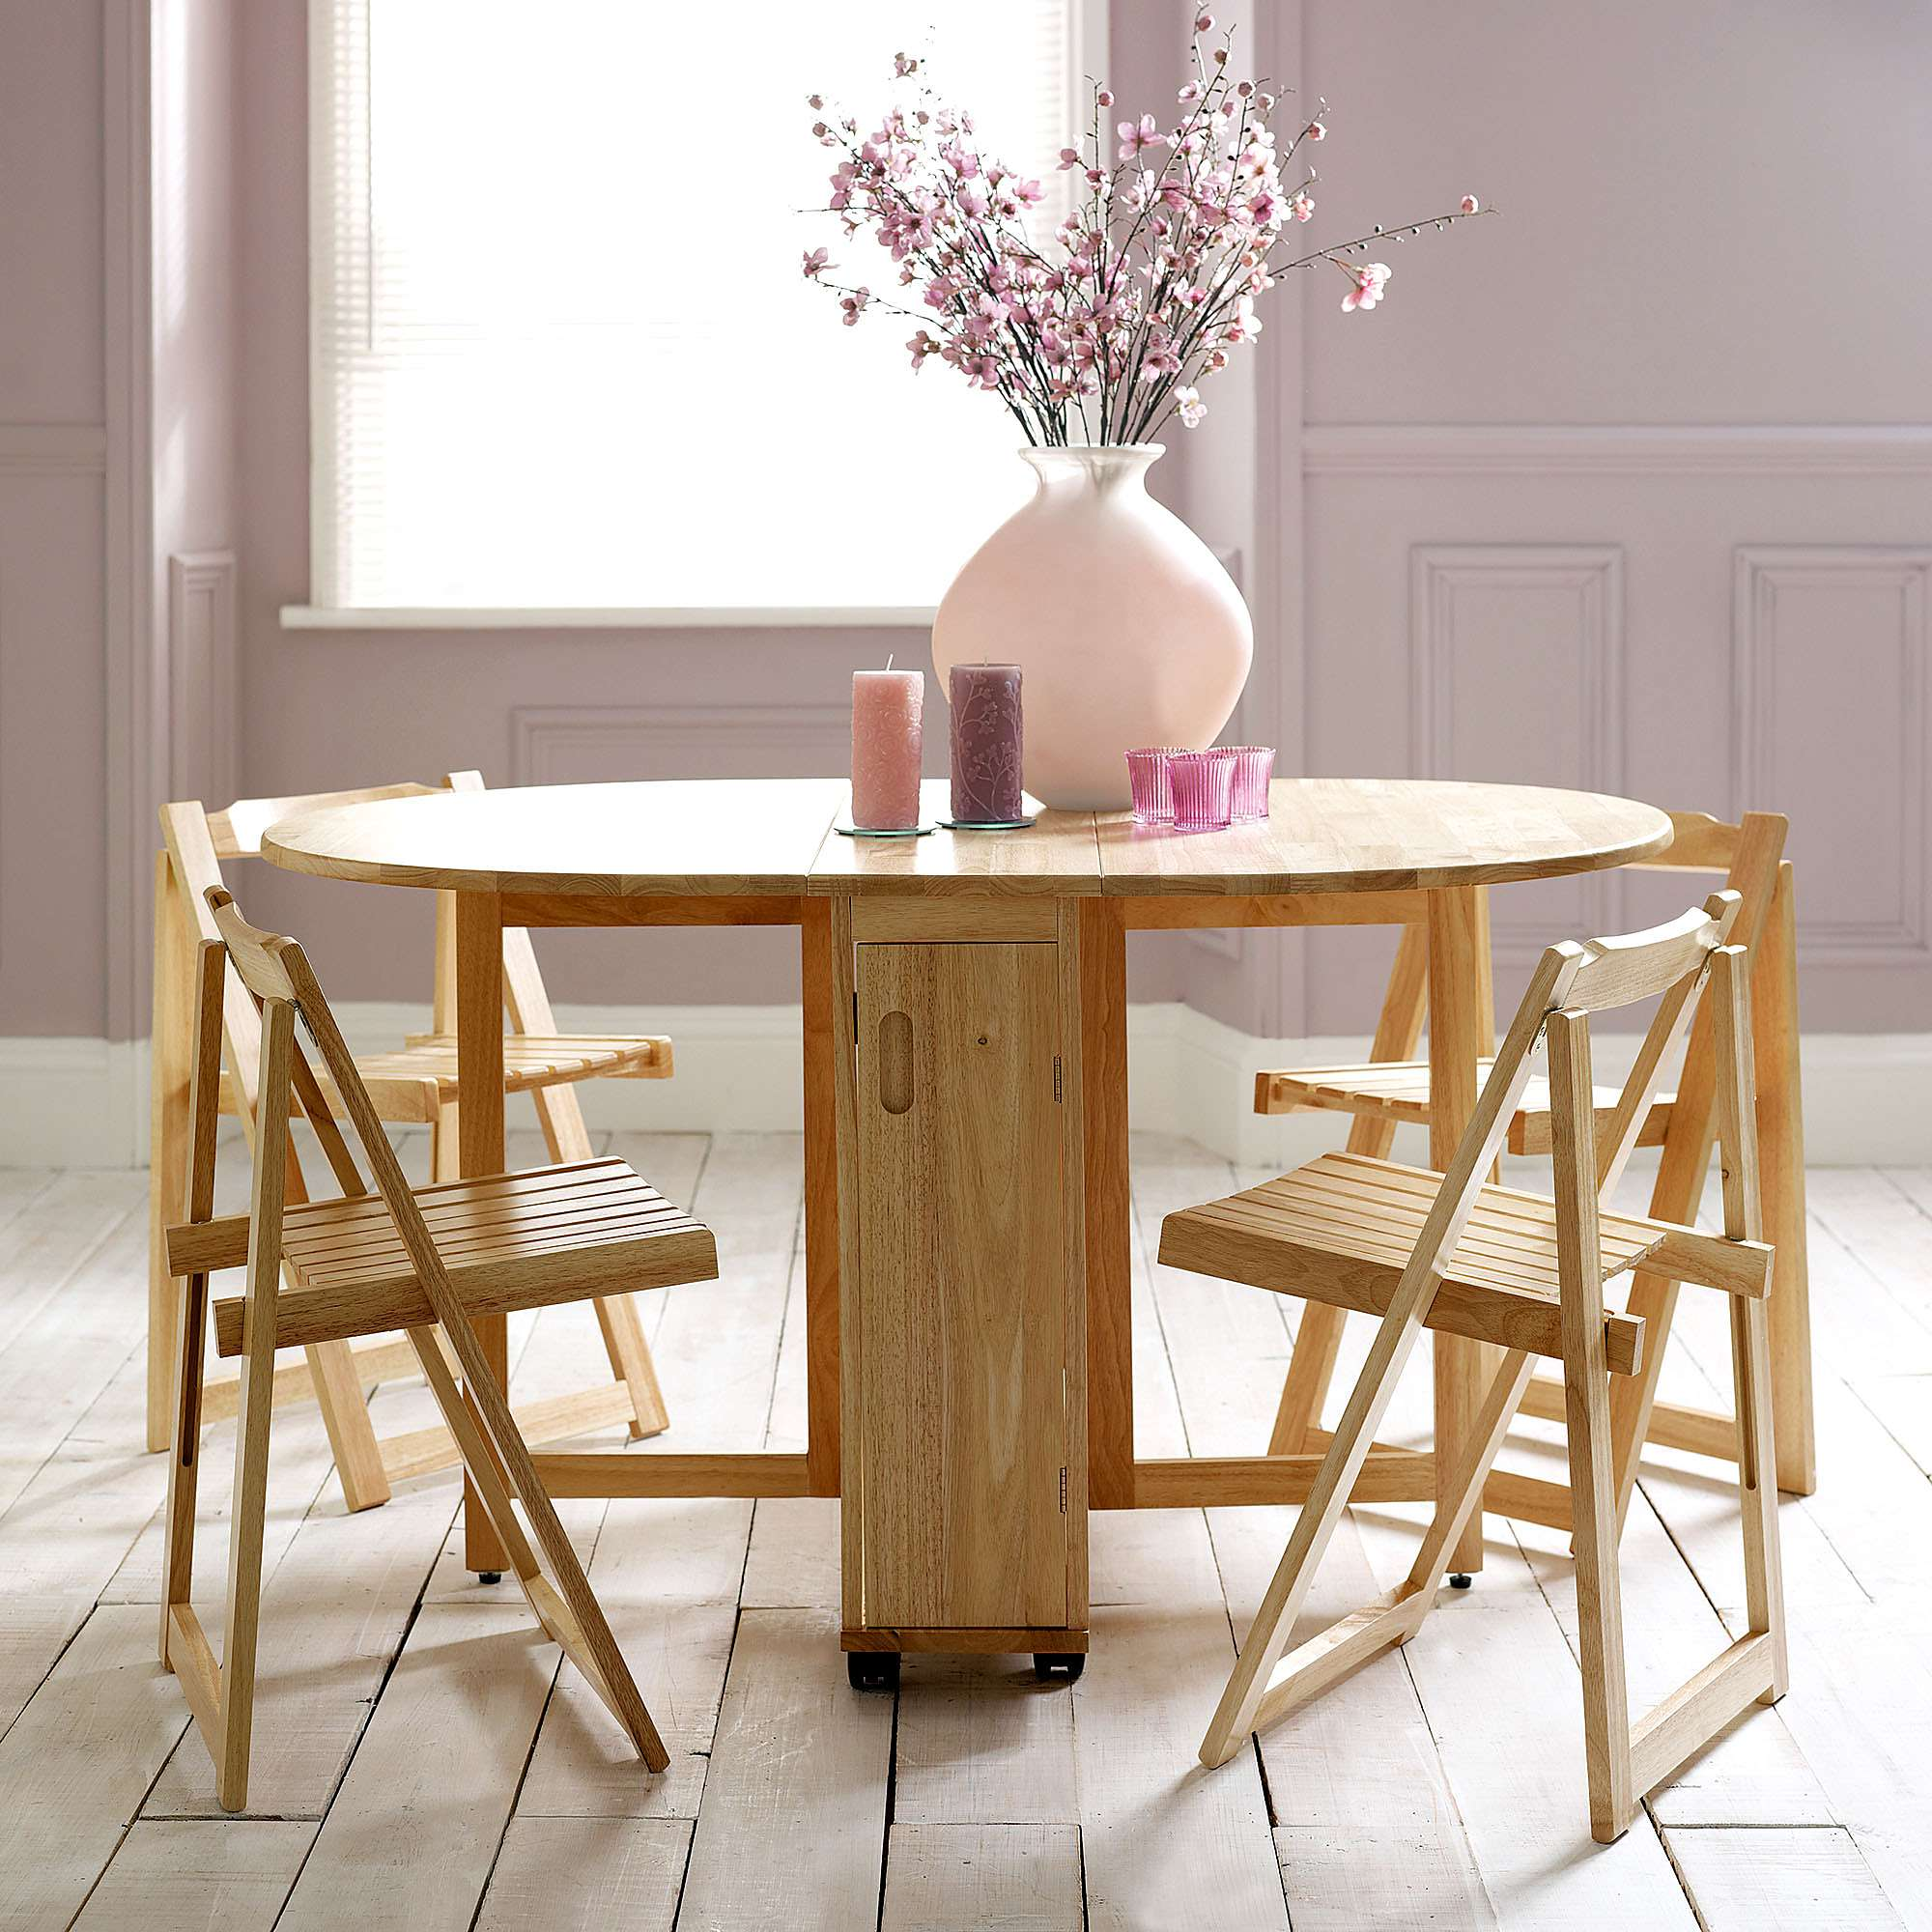 Dining Tables Com: Choose A Folding Dining Table For A Small Space